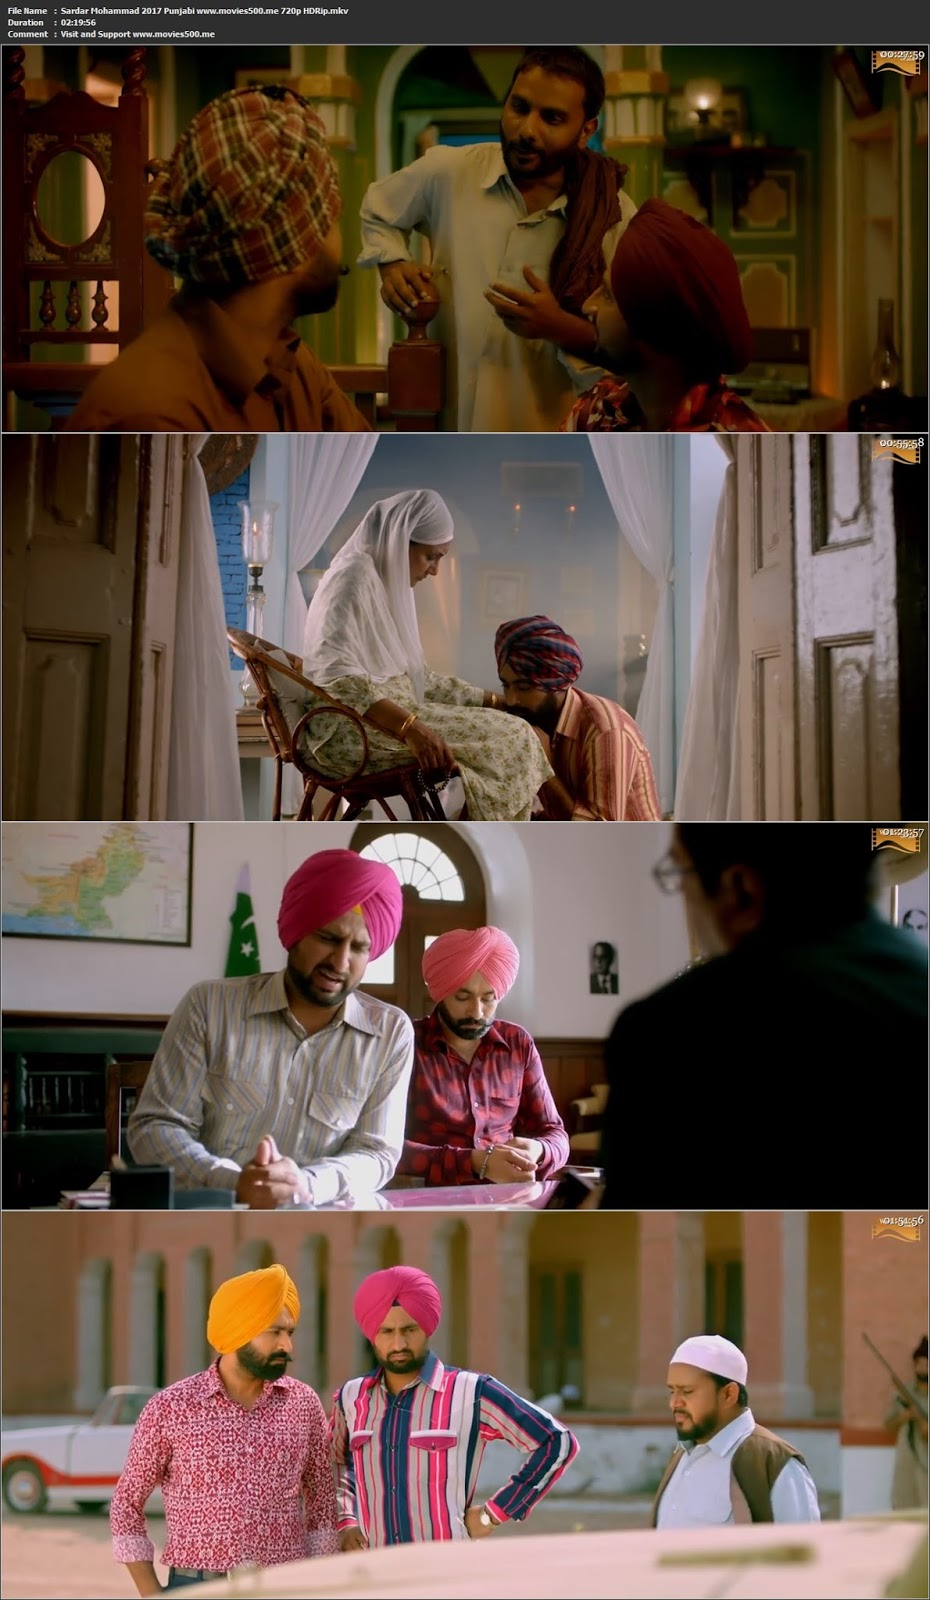 Sardar Mohammad 2017 Punjabi Full Movie HDRip 720p at mualfa.net